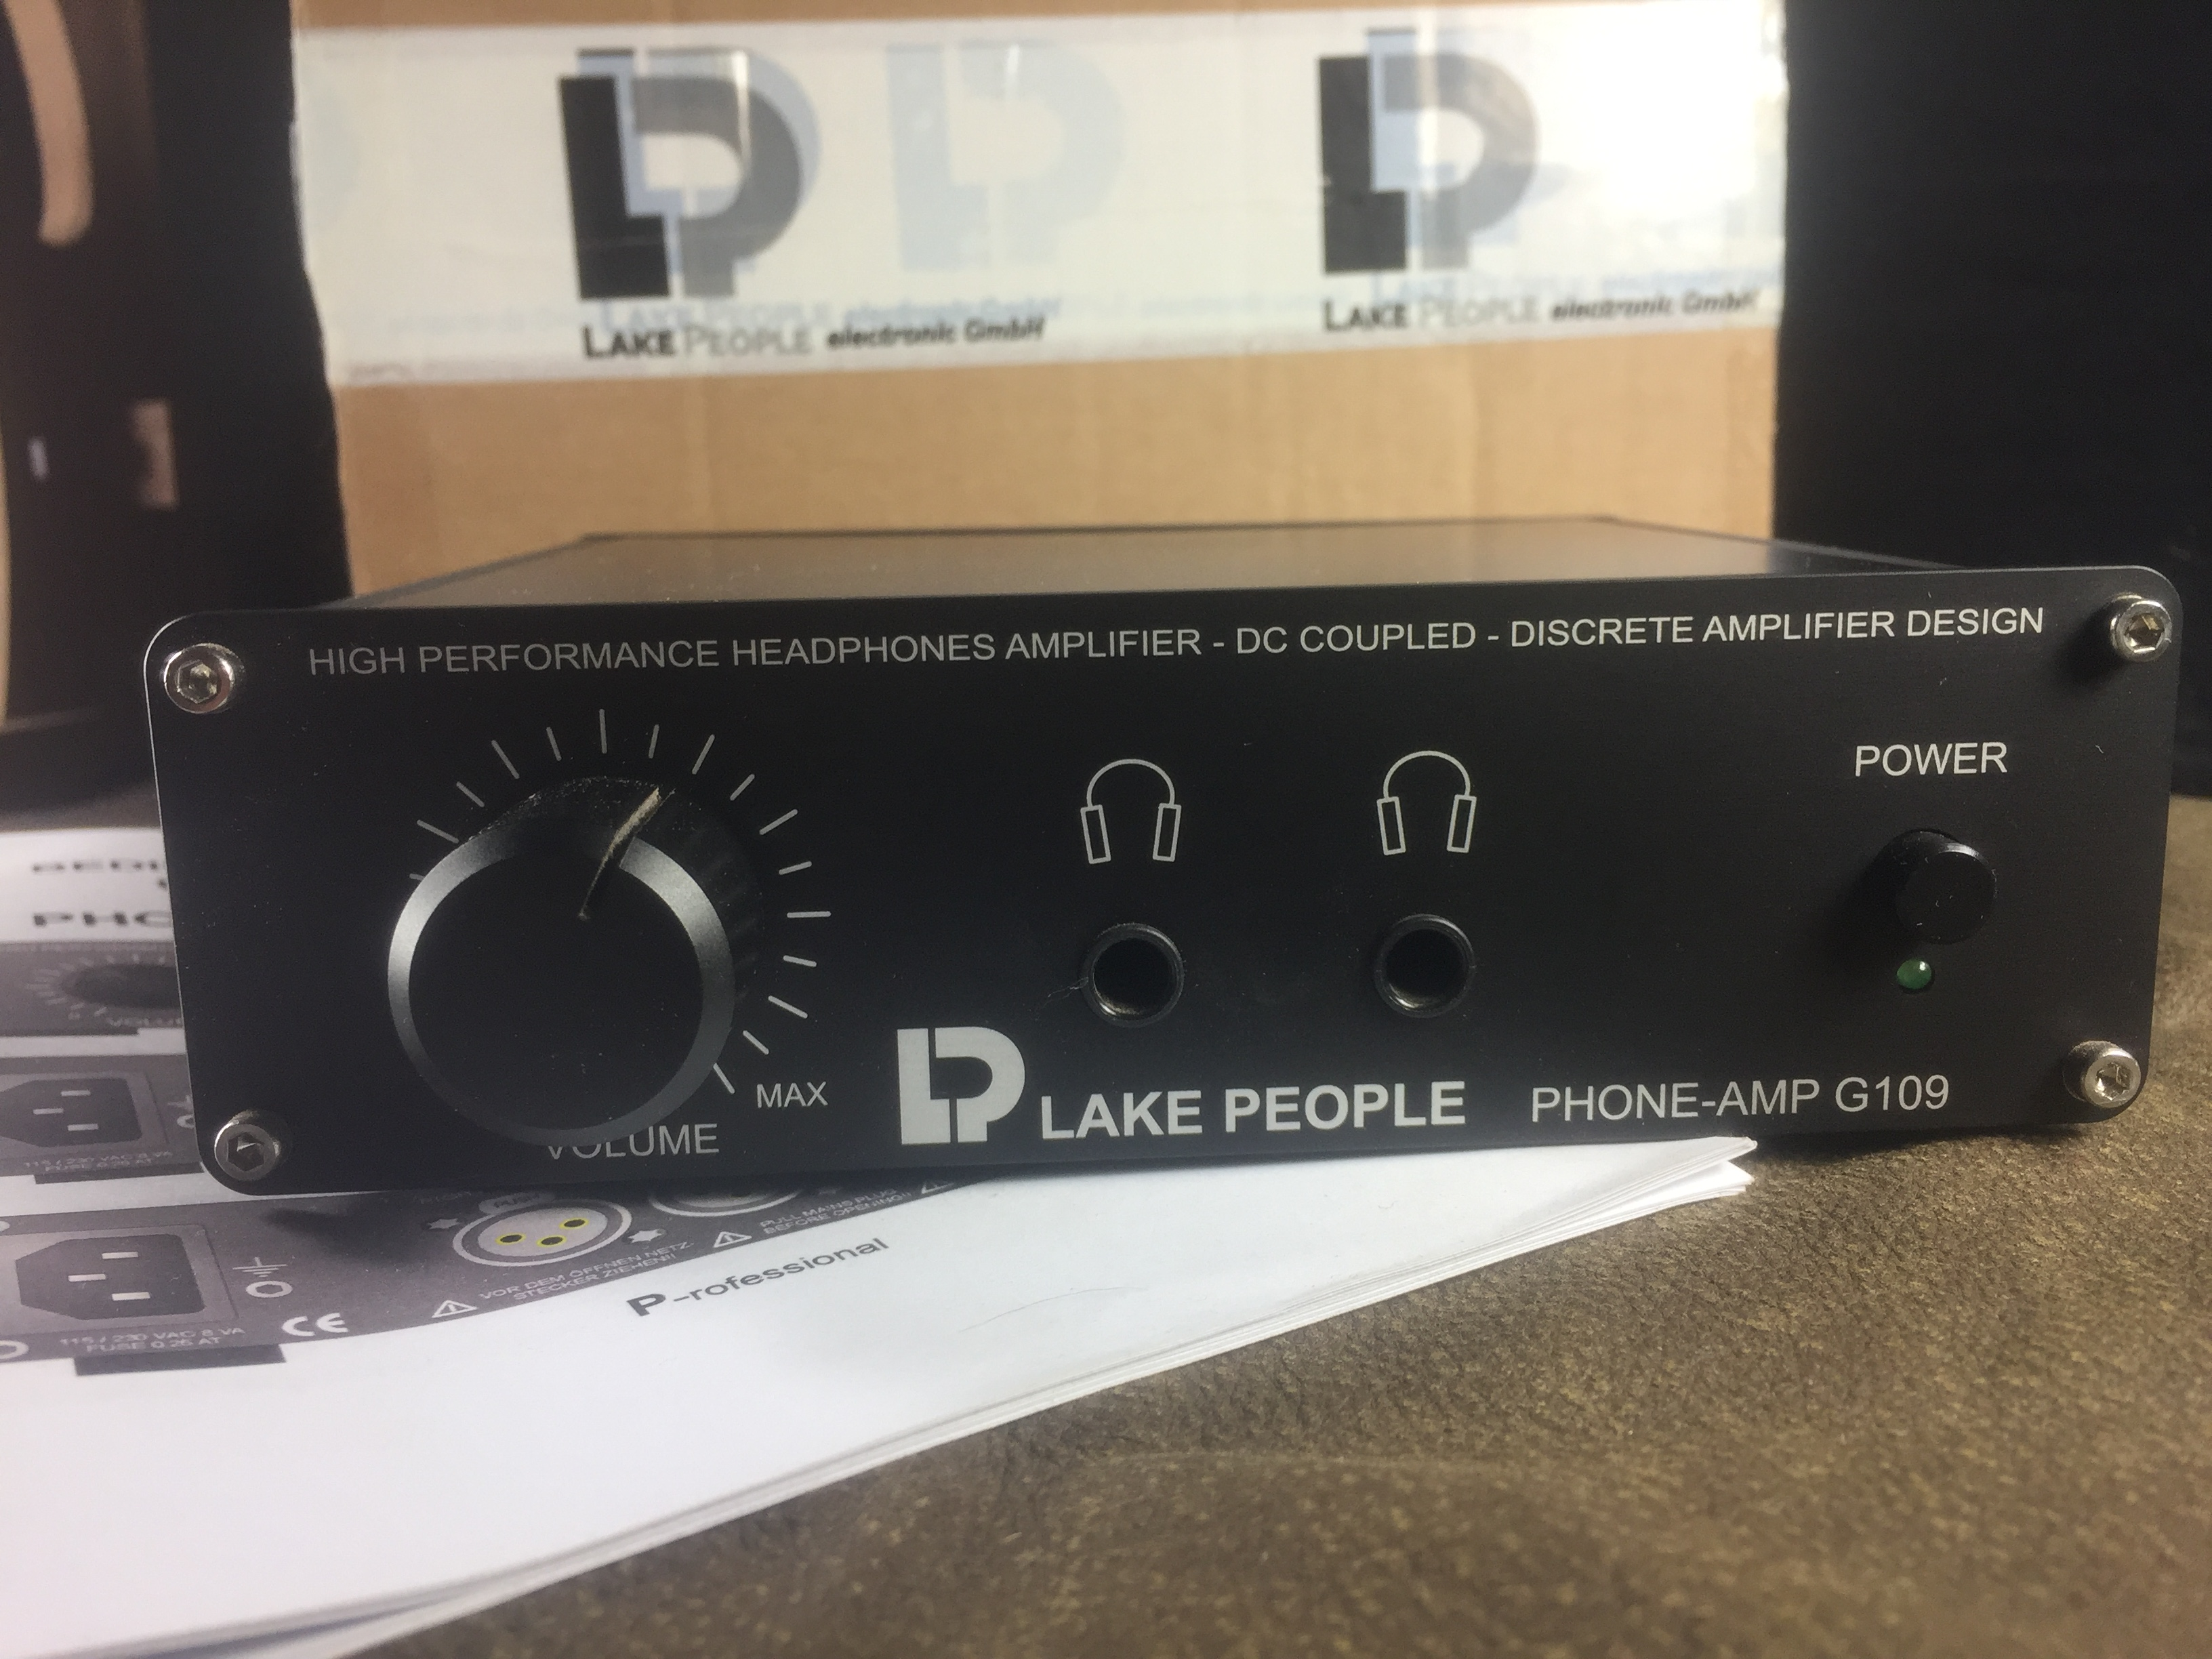 Lake People G109p Sold Headphone Reviews And Discussion Head Dc Coupled Audio Amplifier 939fcaca B836 4796 Bbfb 35496e7d691ejpeg